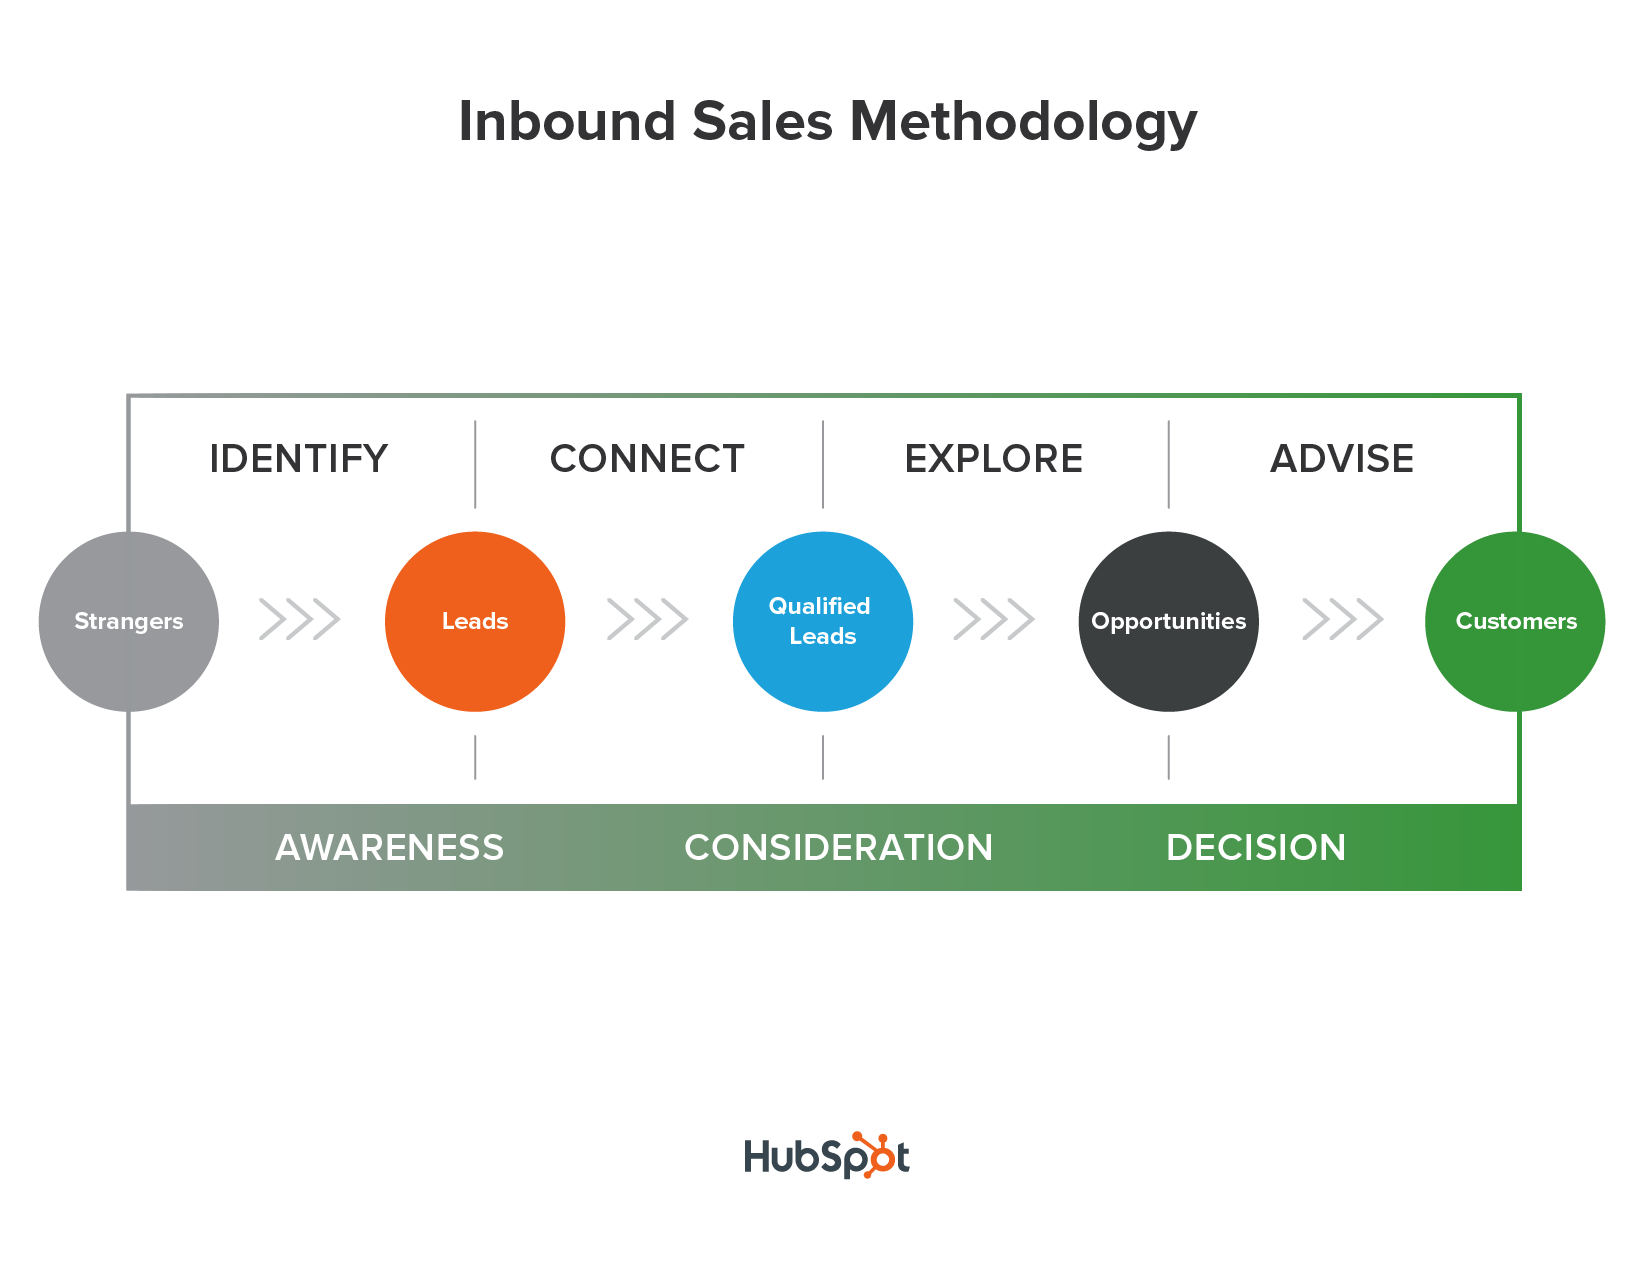 HubSpot's Inbound Sales Methodology & Free Certification Course Usher in a New Era of Sales